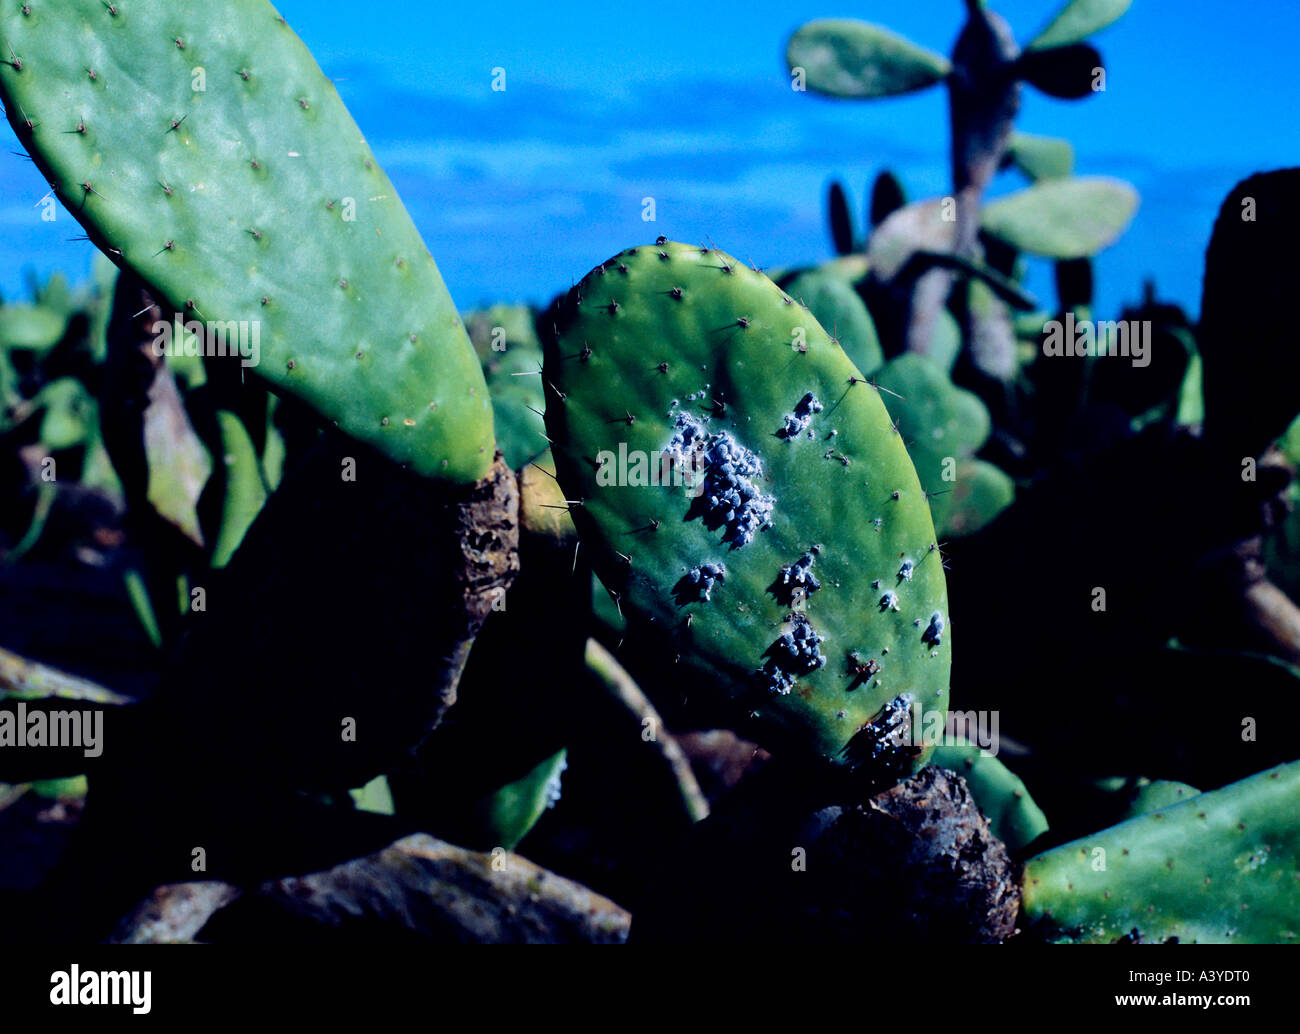 cochineal beetles on cactus leaves plantations for getting dye near village of guatiza lanzarote canary islands spain - Stock Image